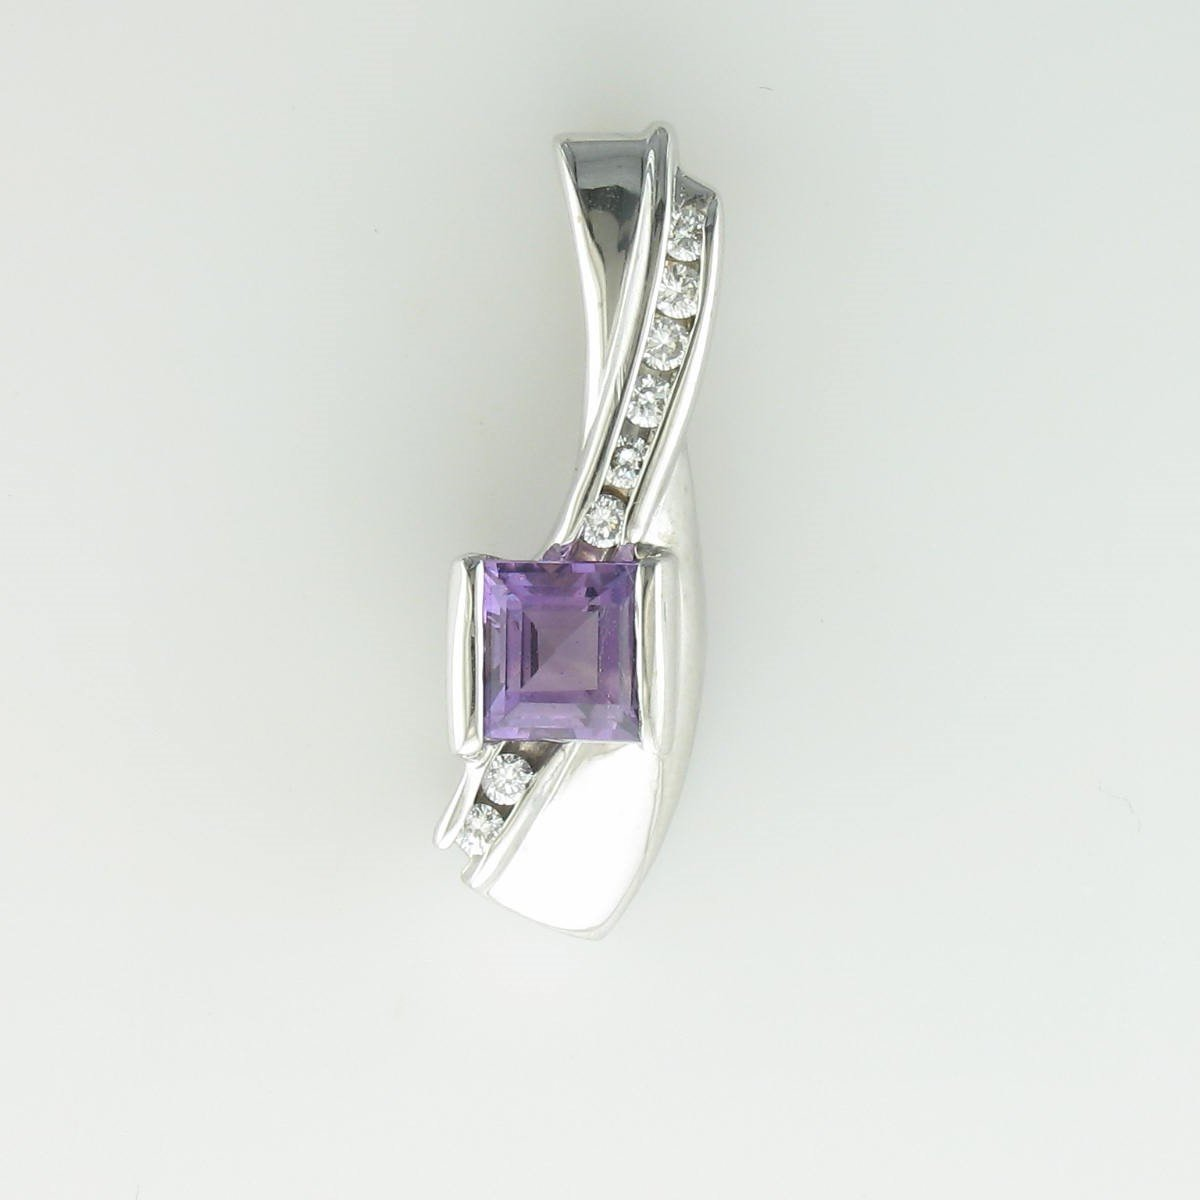 1.65ct Princess Cut Amethyst Set In 14K White Gold Pendant